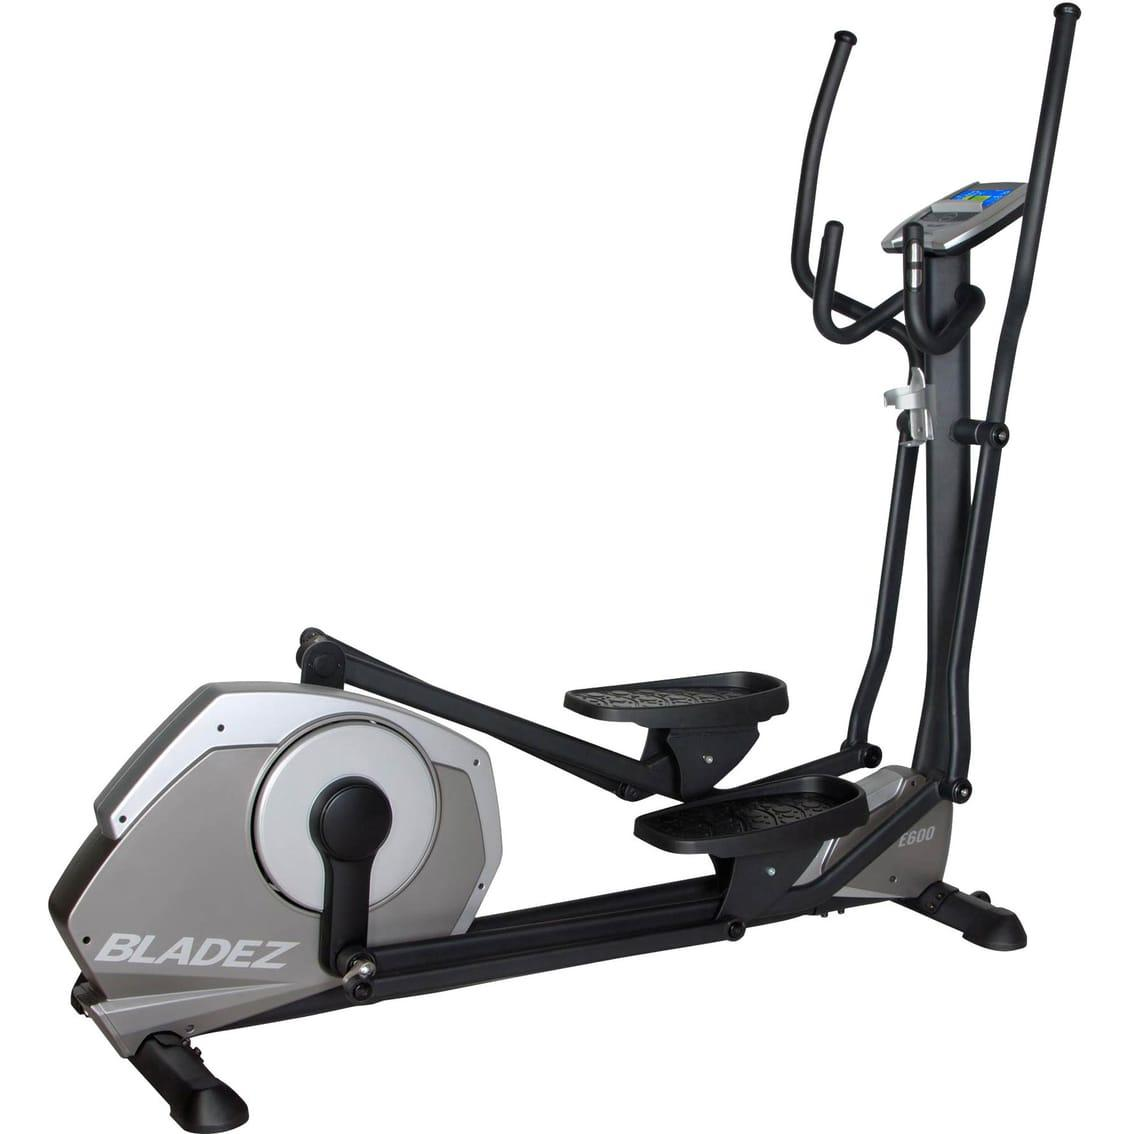 Bladez E600 Elliptical